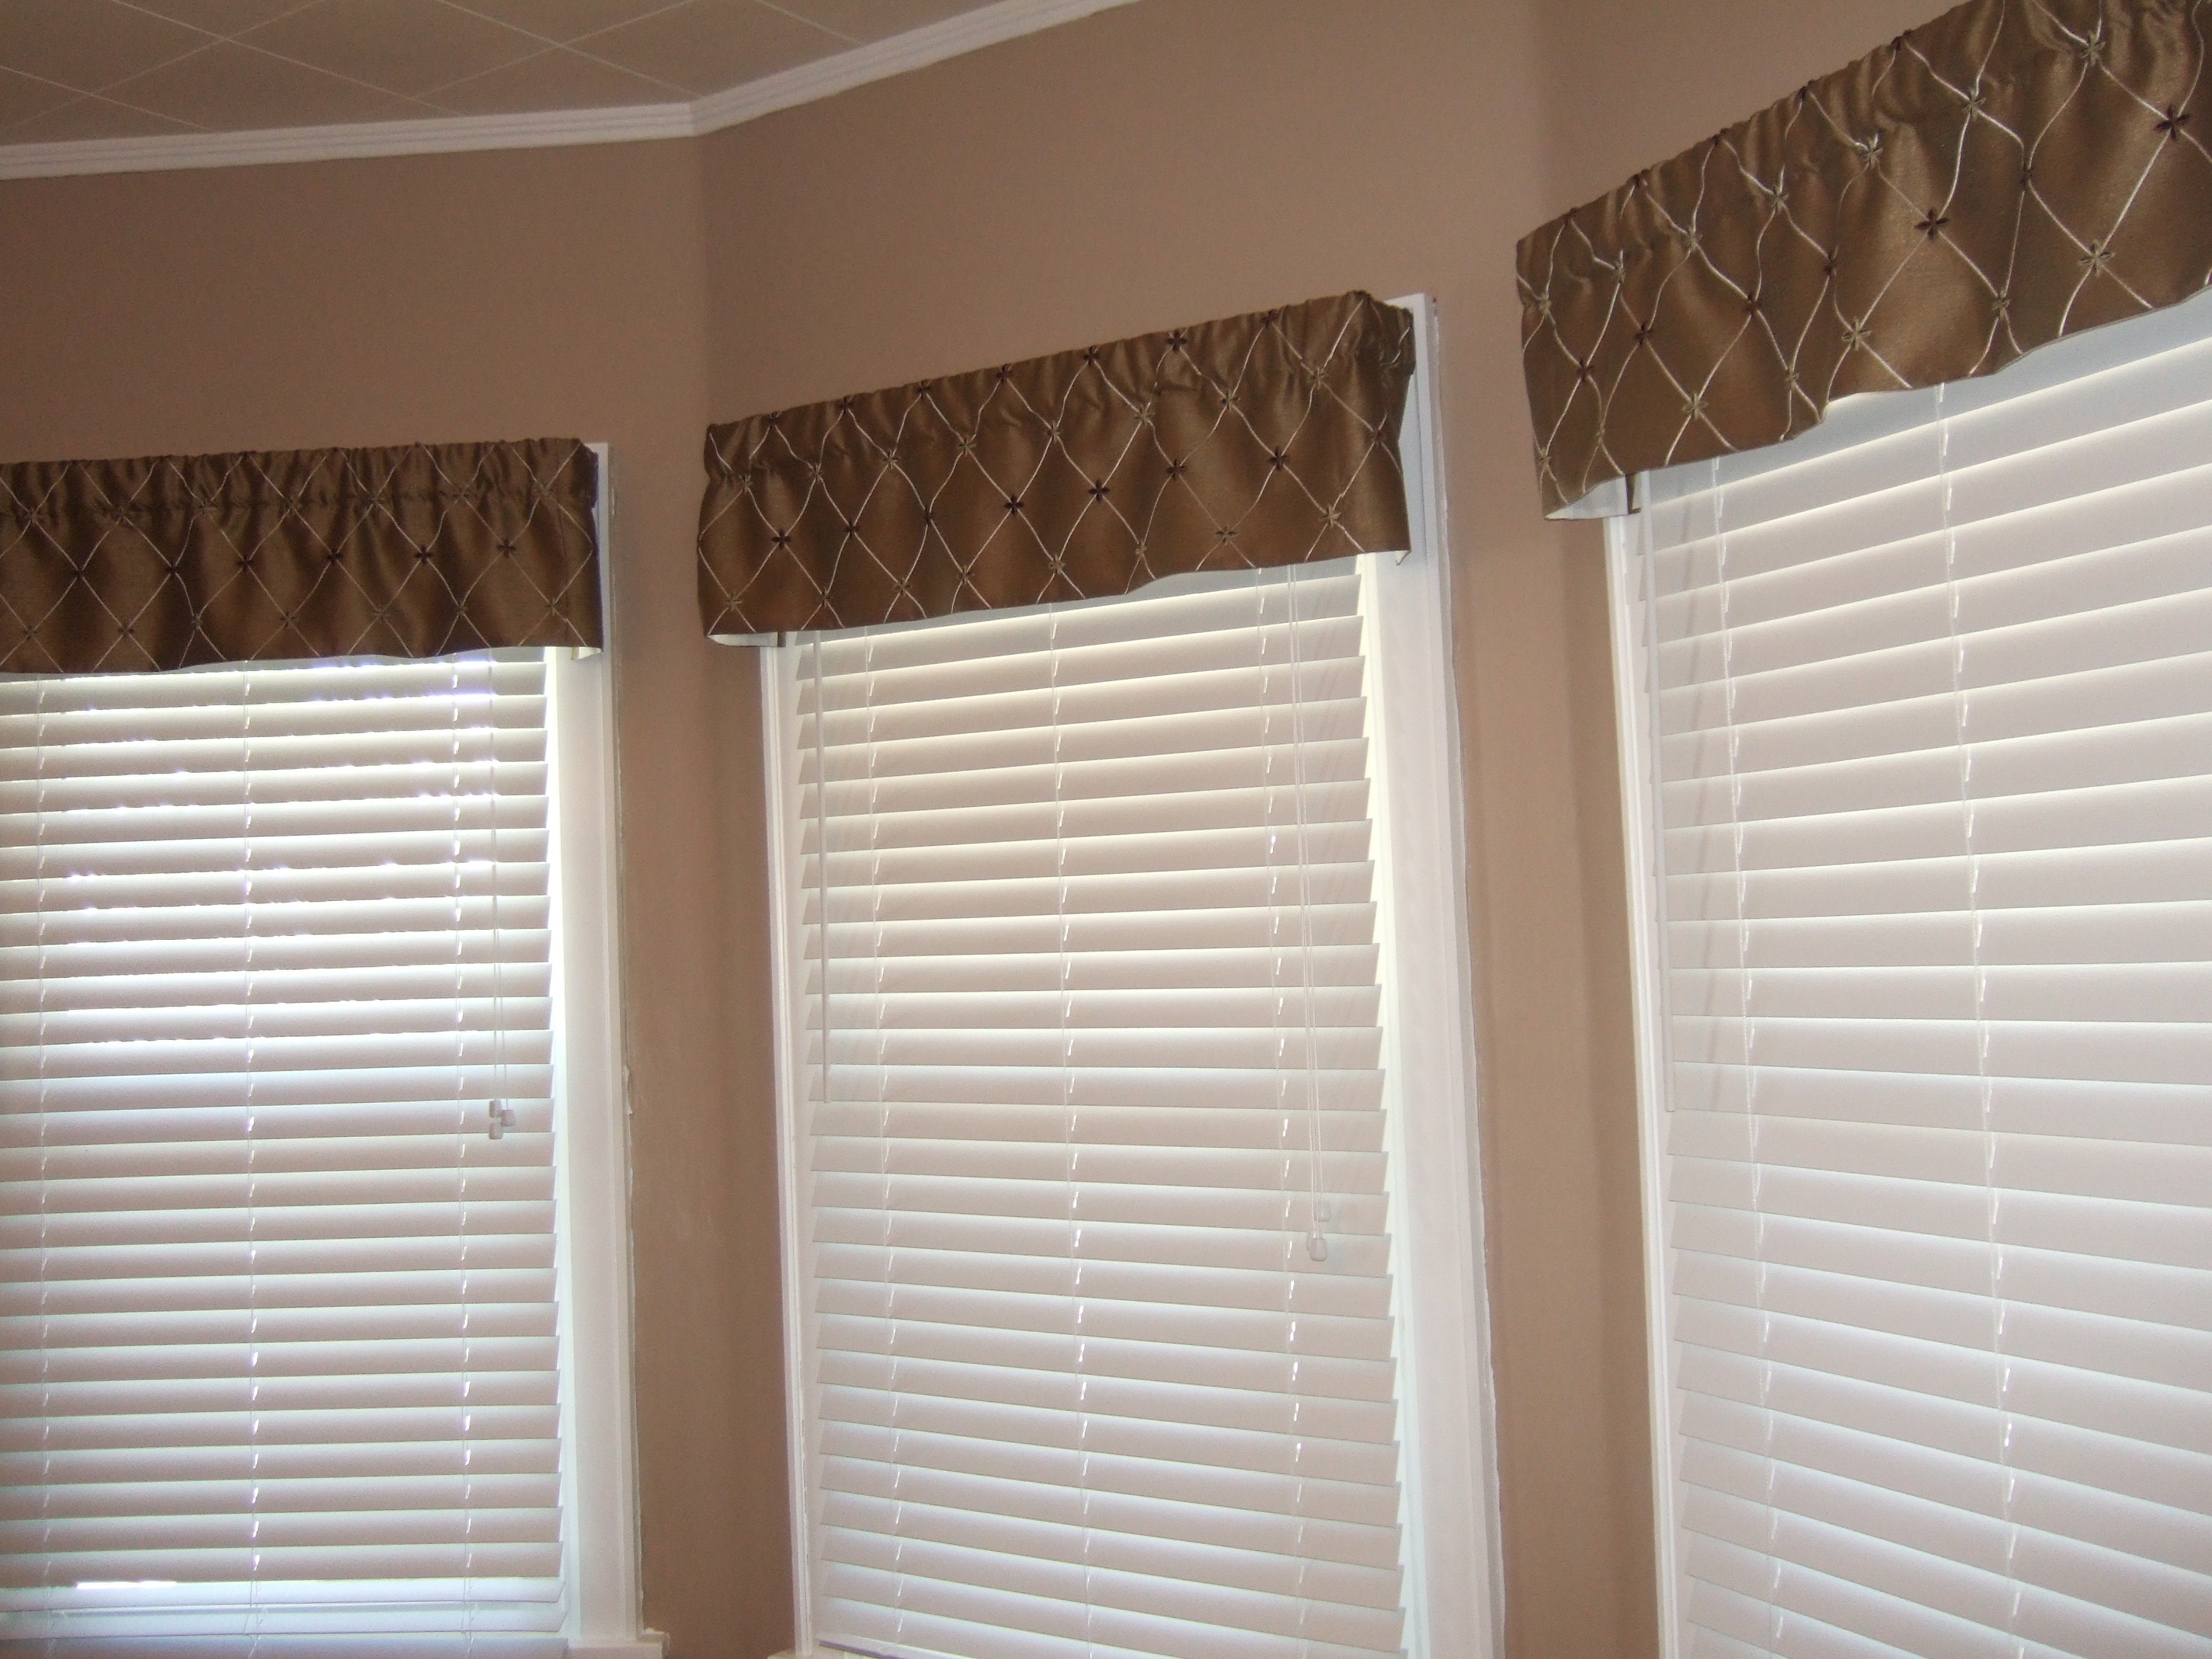 Breakfast Nook Valances!